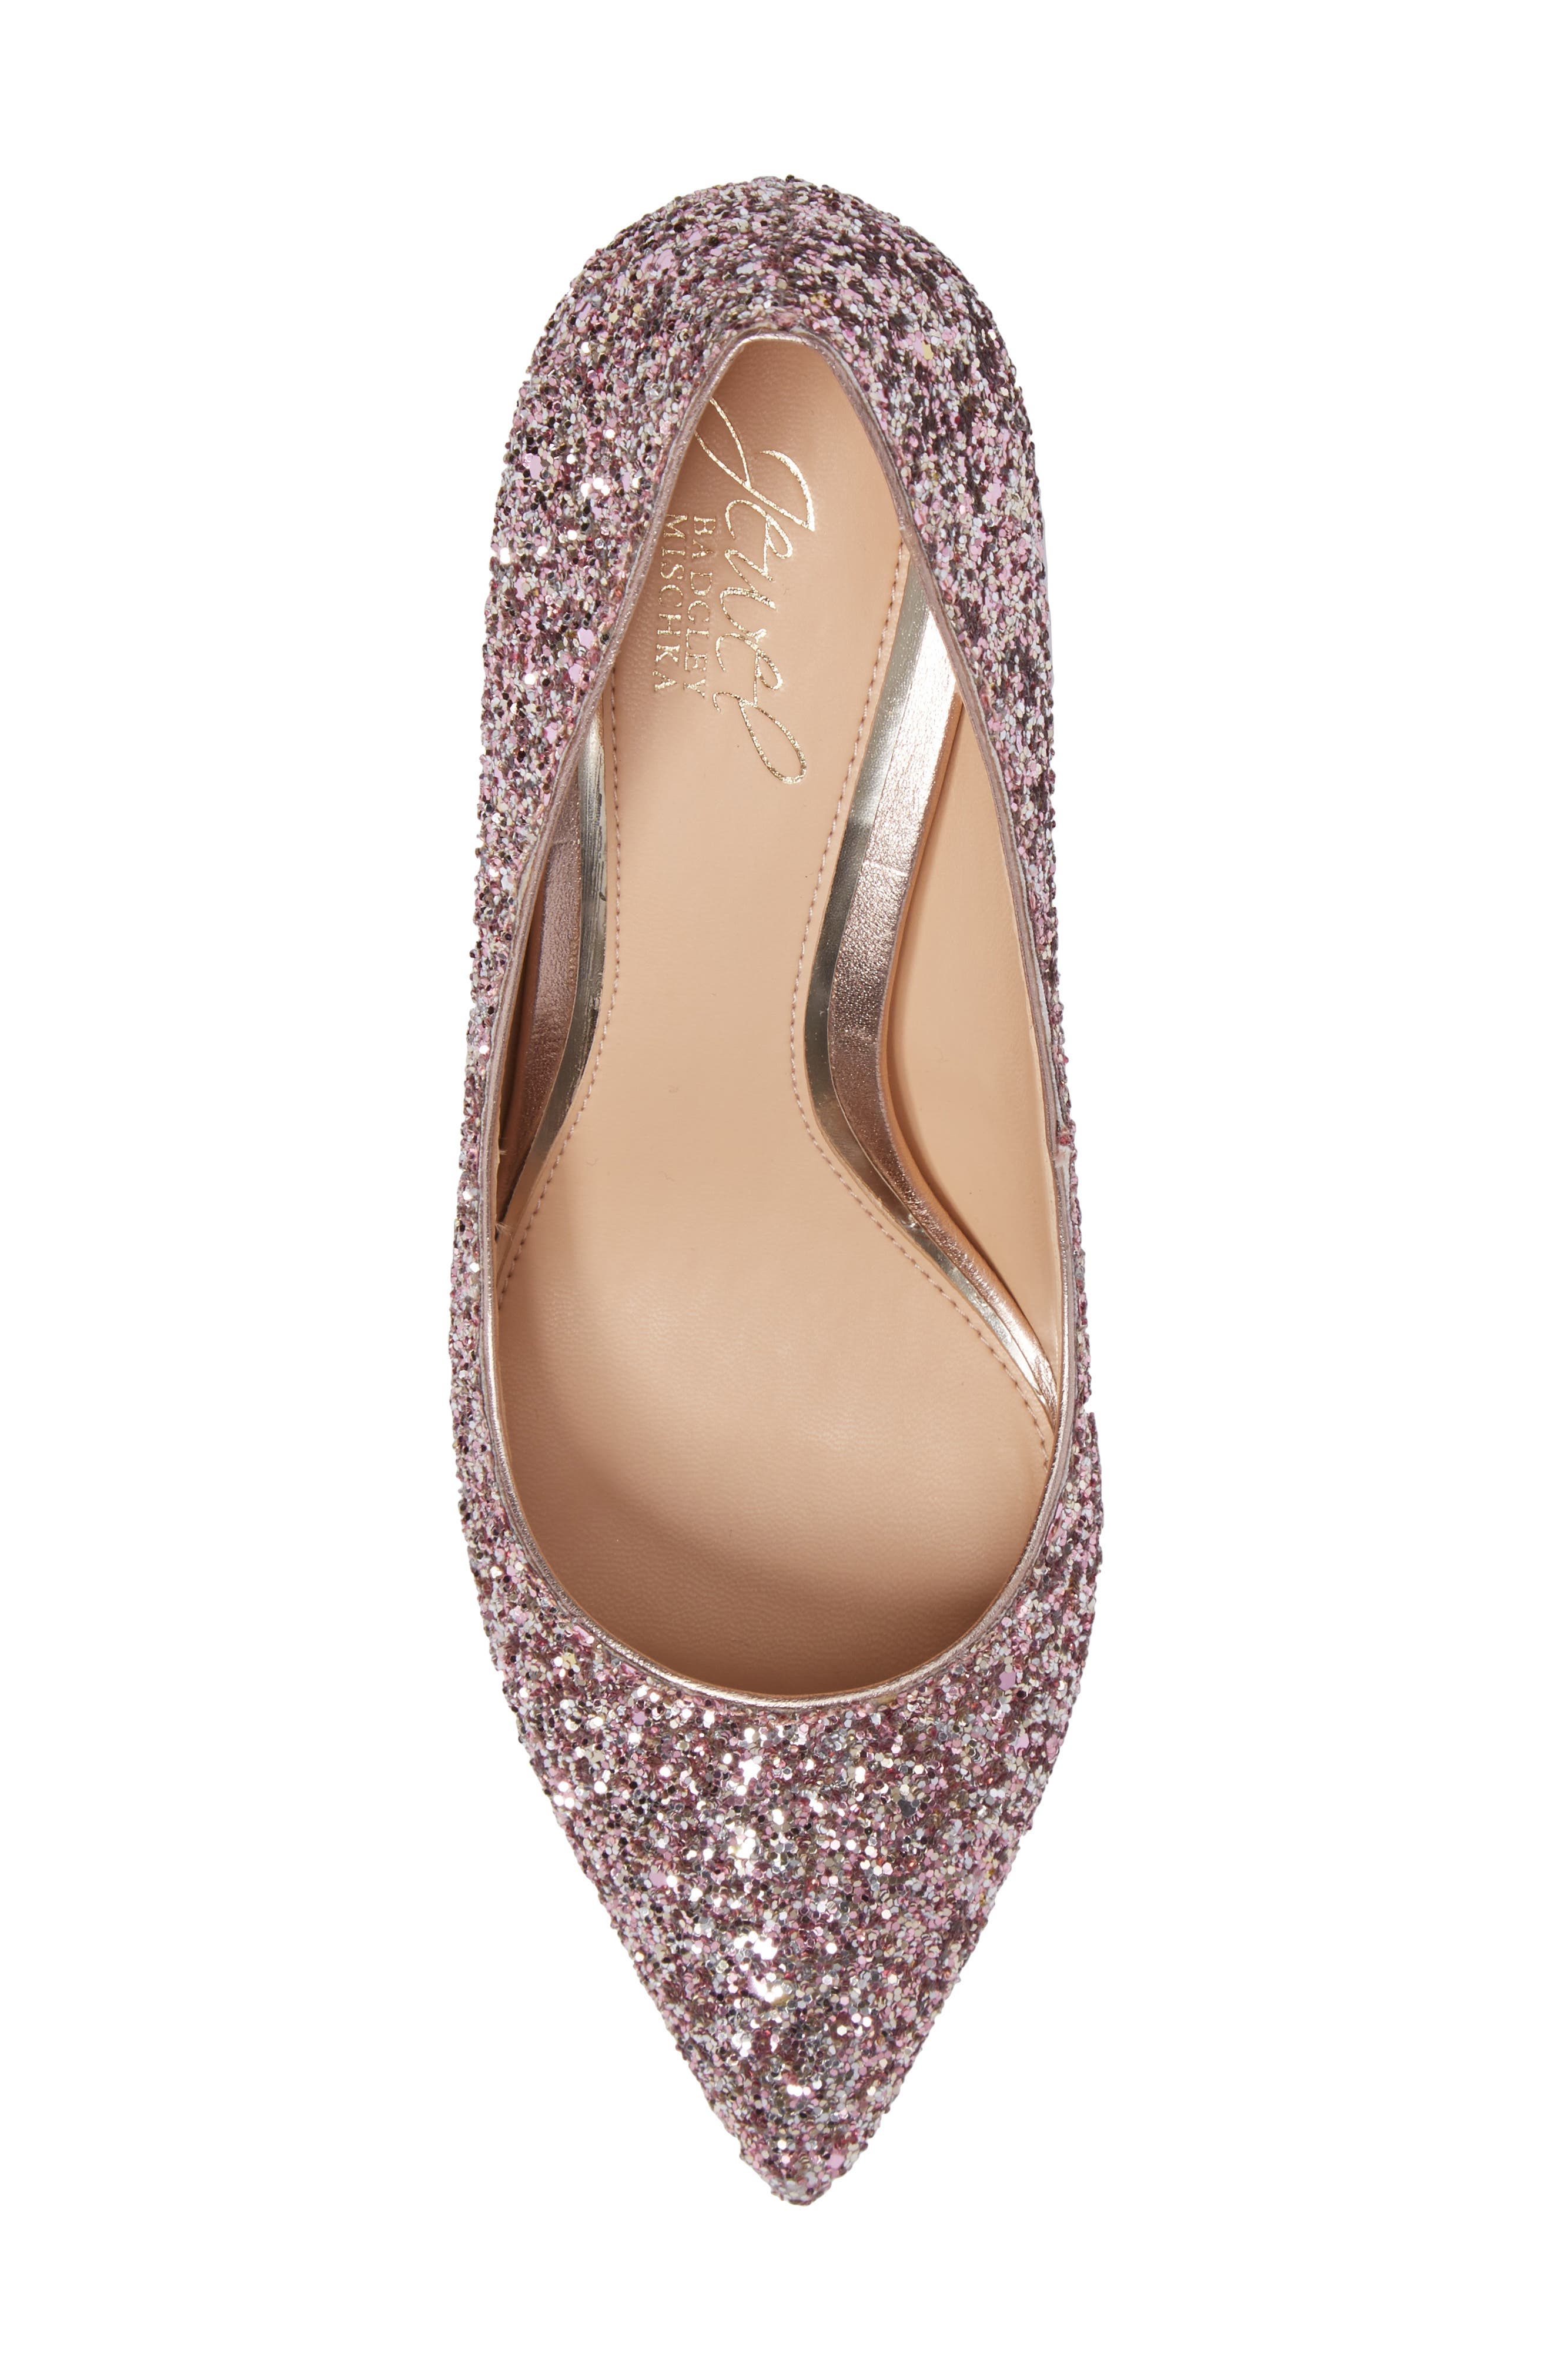 Lyla Glitter Pointy Toe Pump,                             Alternate thumbnail 5, color,                             ROSE GOLD